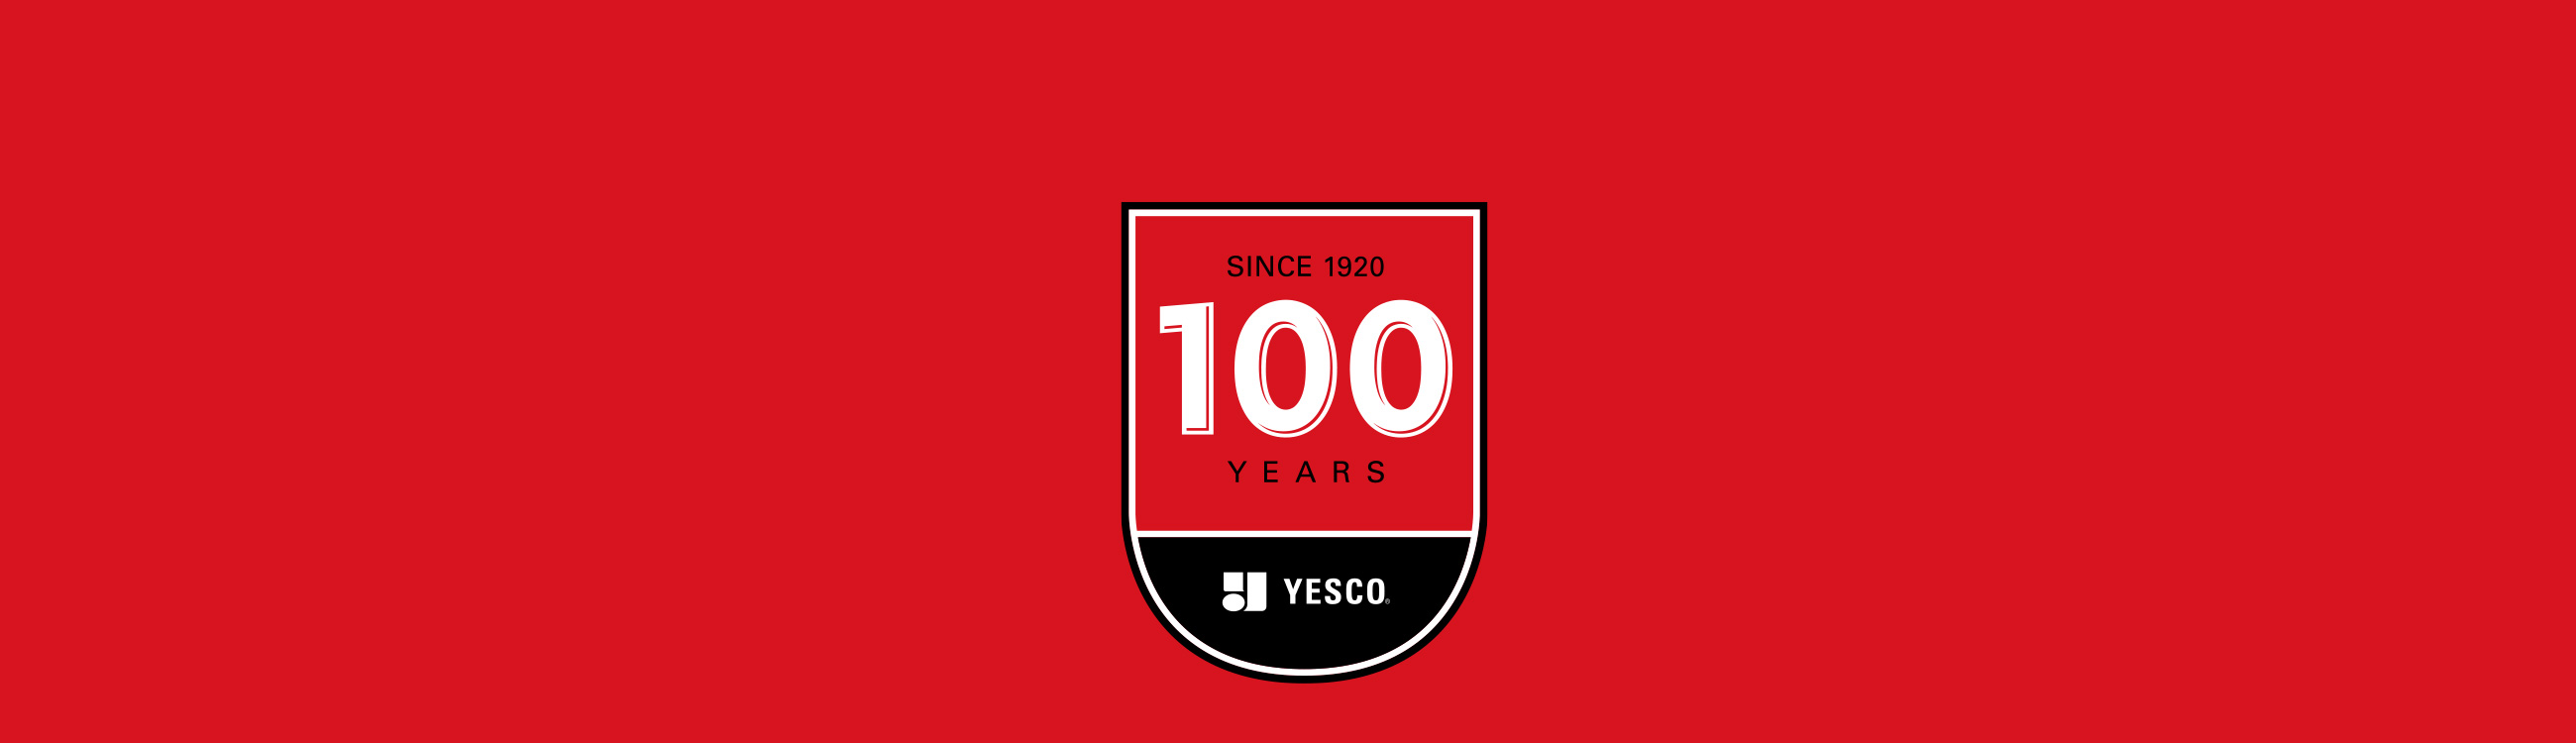 YESCO 100Y ears